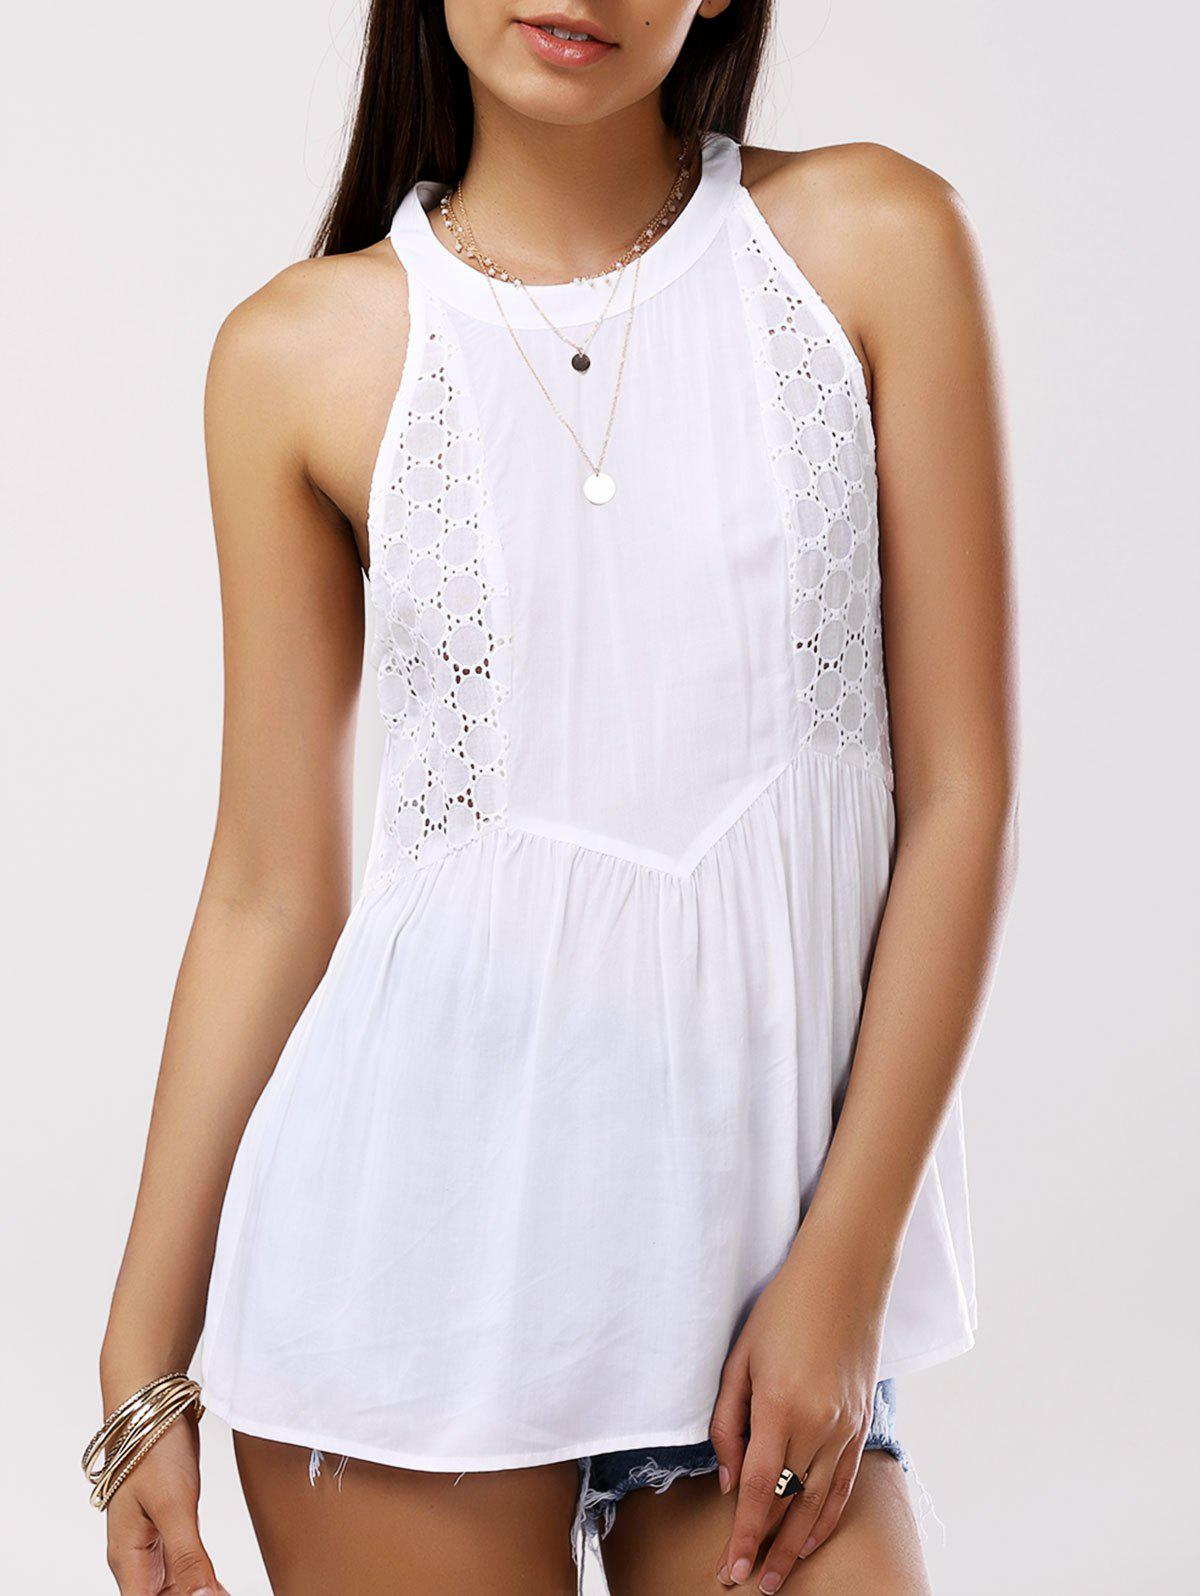 Sweet Round Collar Splice Cut-Out Sleeveless Blouse For Women - WHITE L